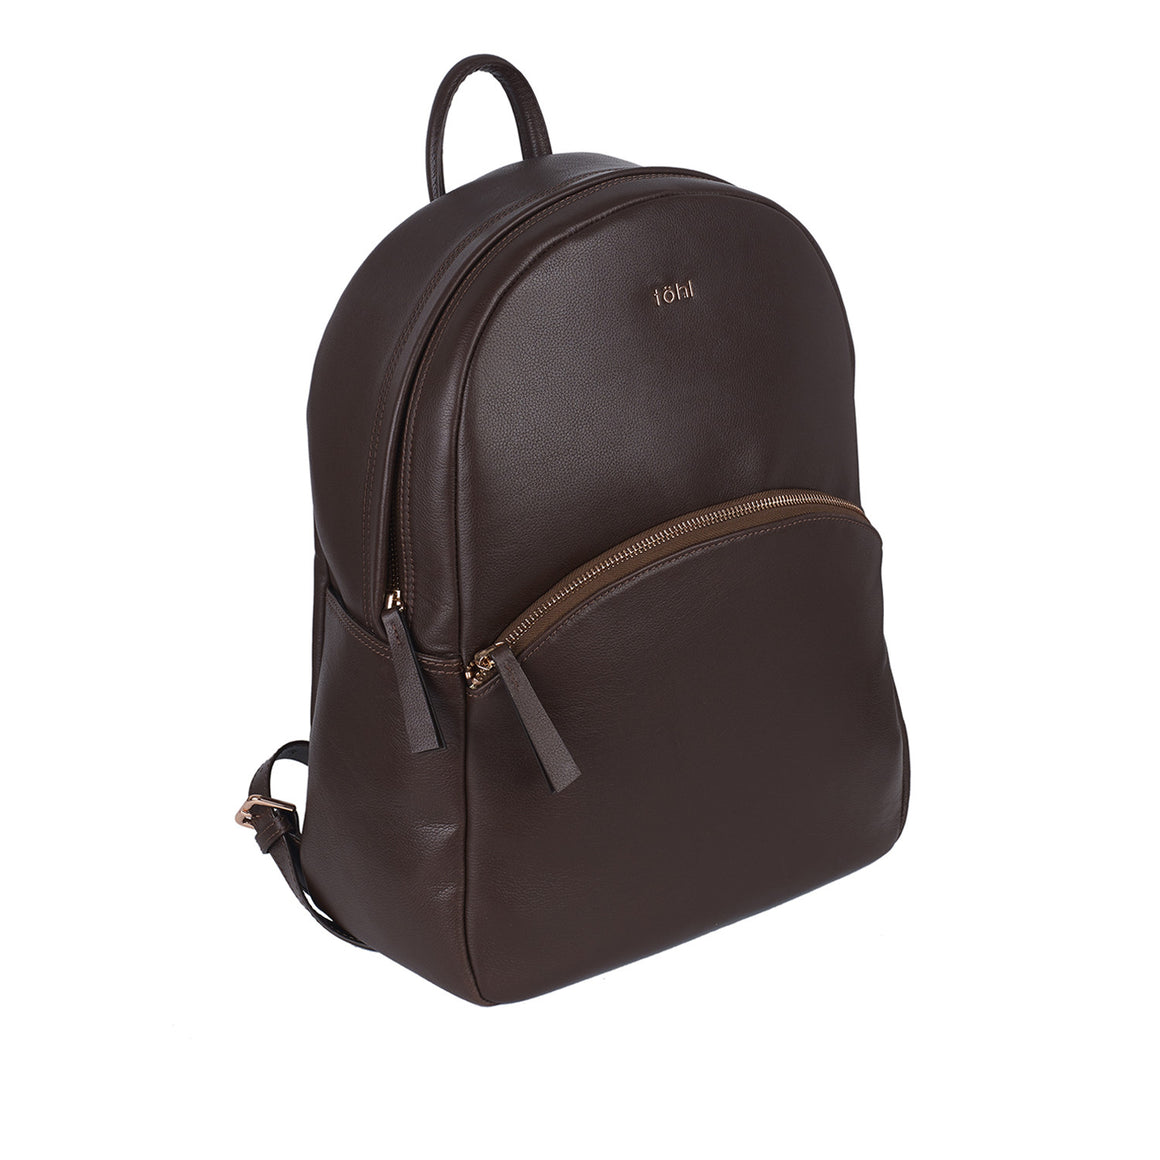 BP 0003 - TOHL CHENA WOMEN'S ZIP THROUGH BACKPACK - CHOCO